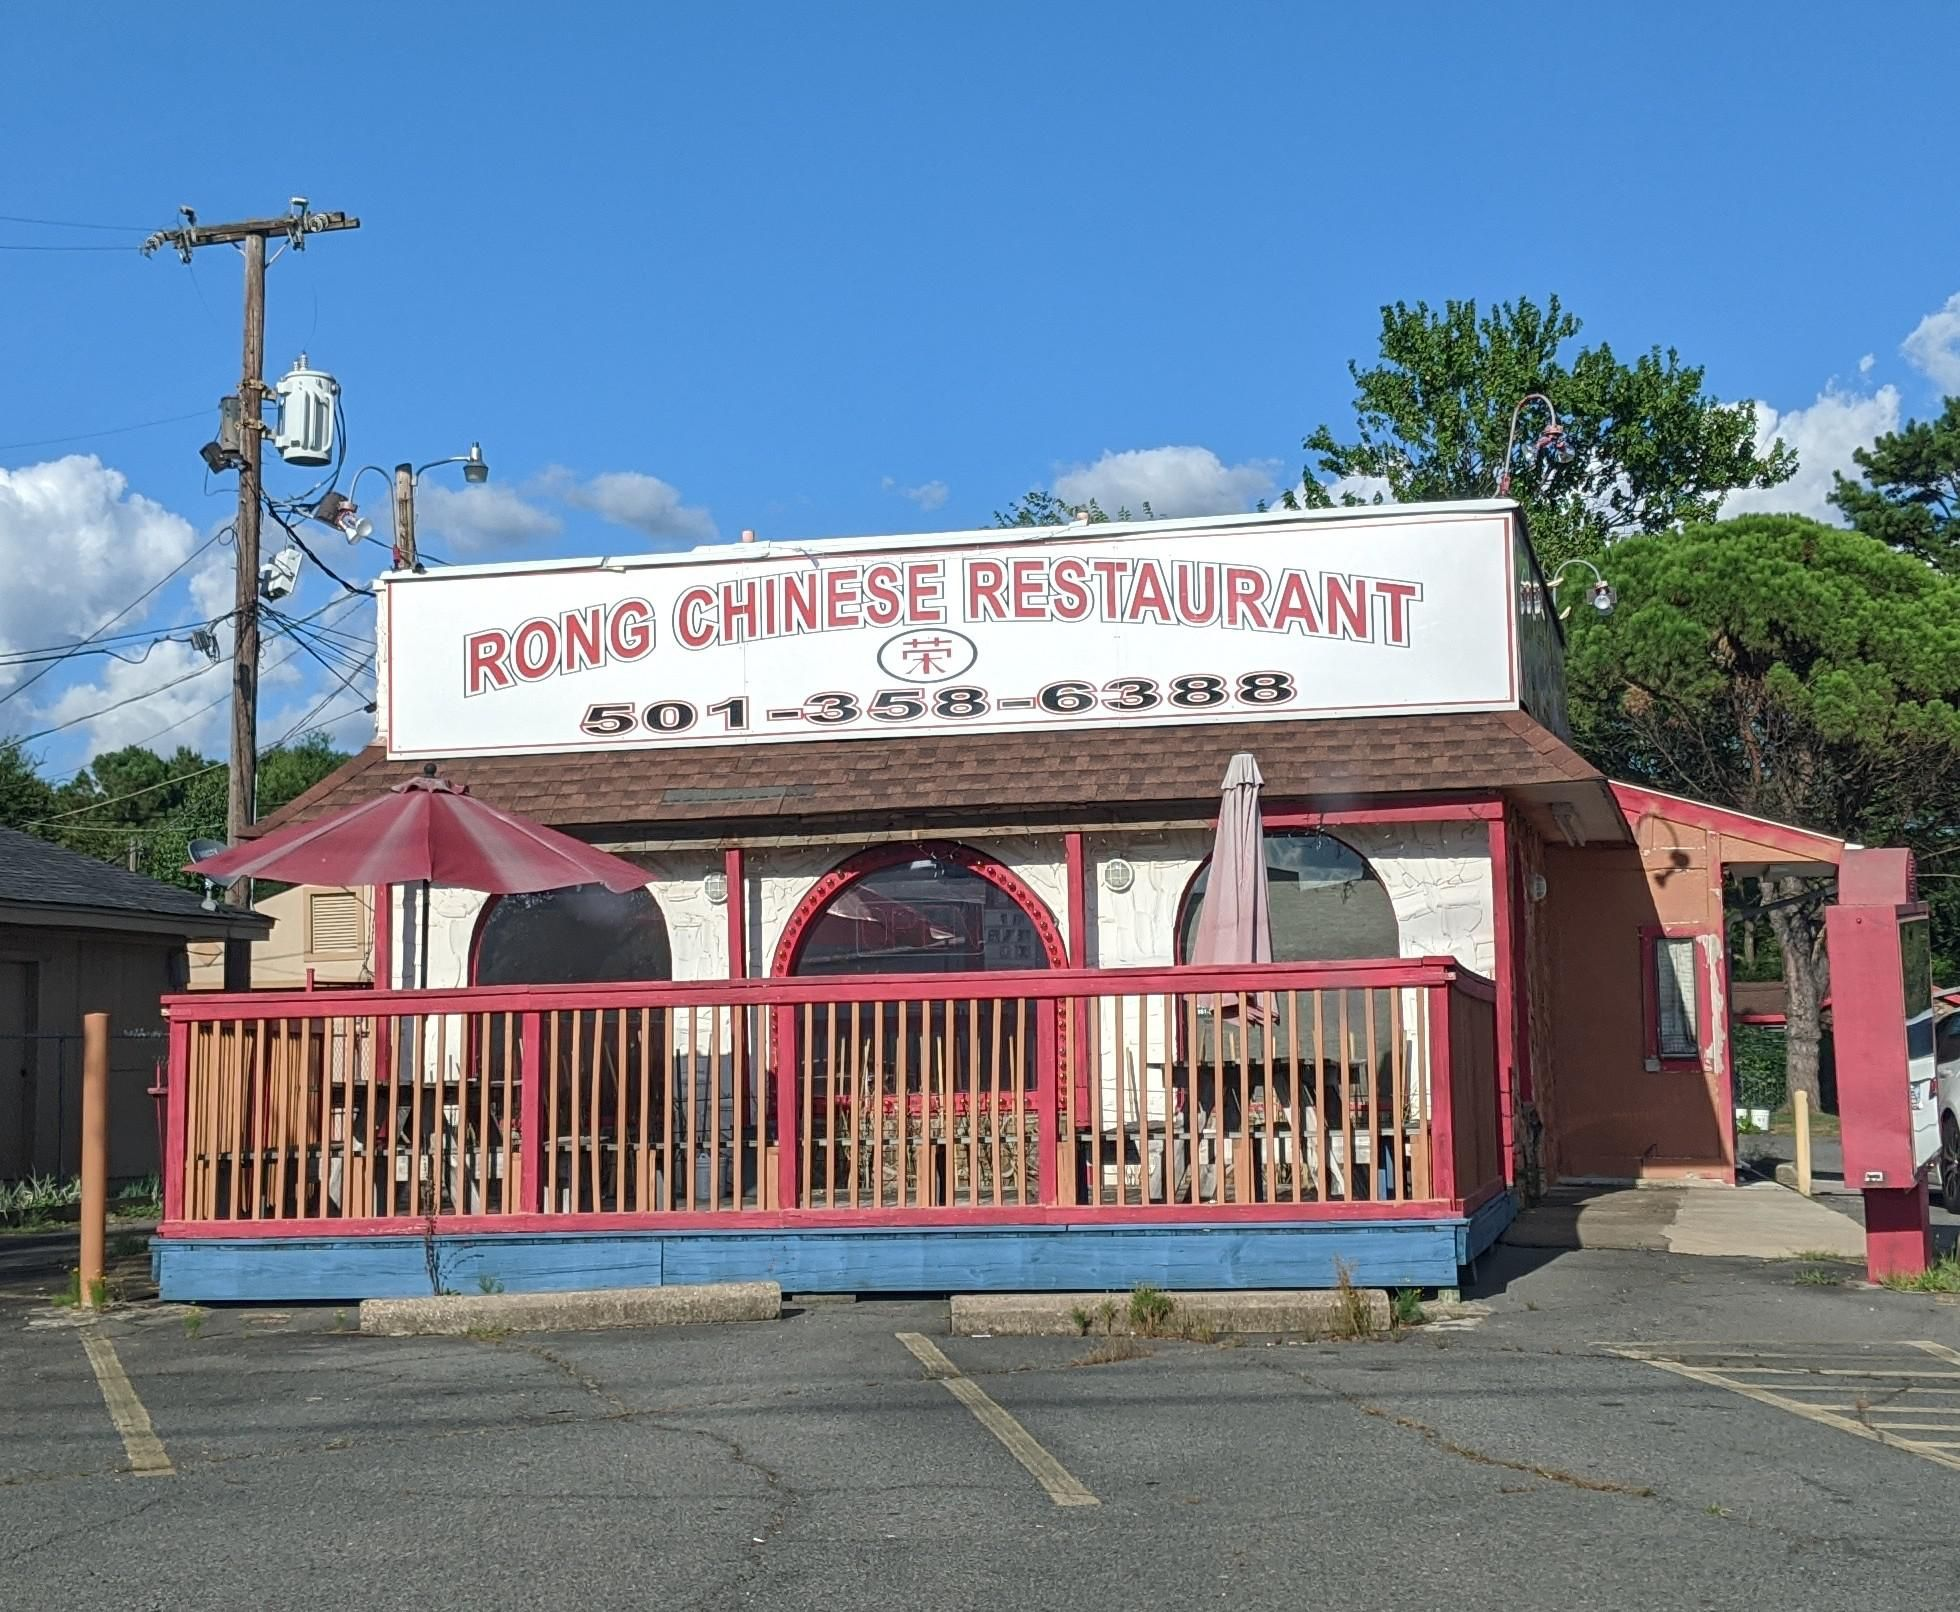 """I always imagine Samuel L Jackson is sitting just inside the door and loudly says """"You just walked into the Rong Chinese Restaurant, motherf*****!"""" when someone walks in."""